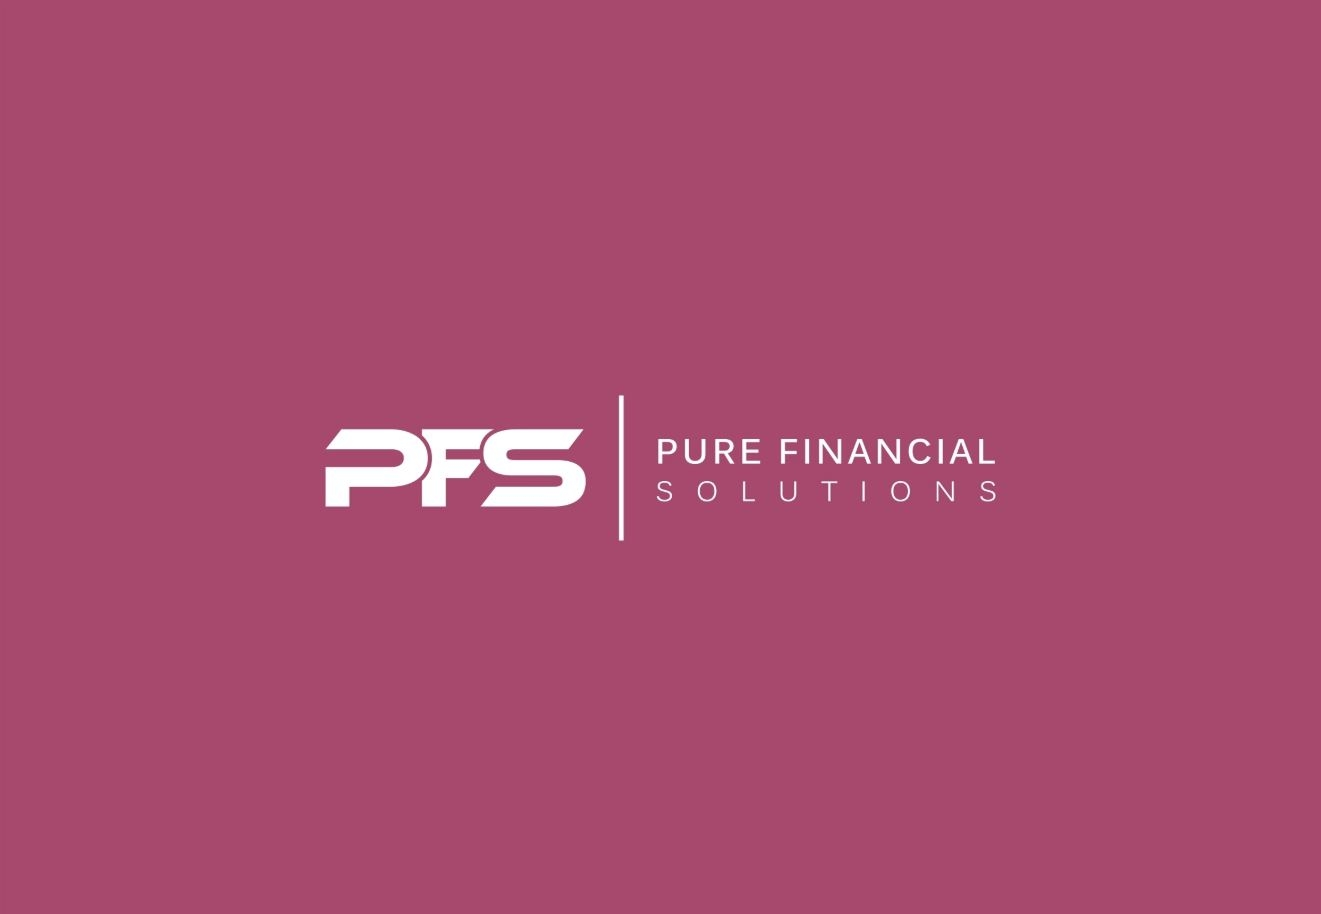 Pure Financial Solutions